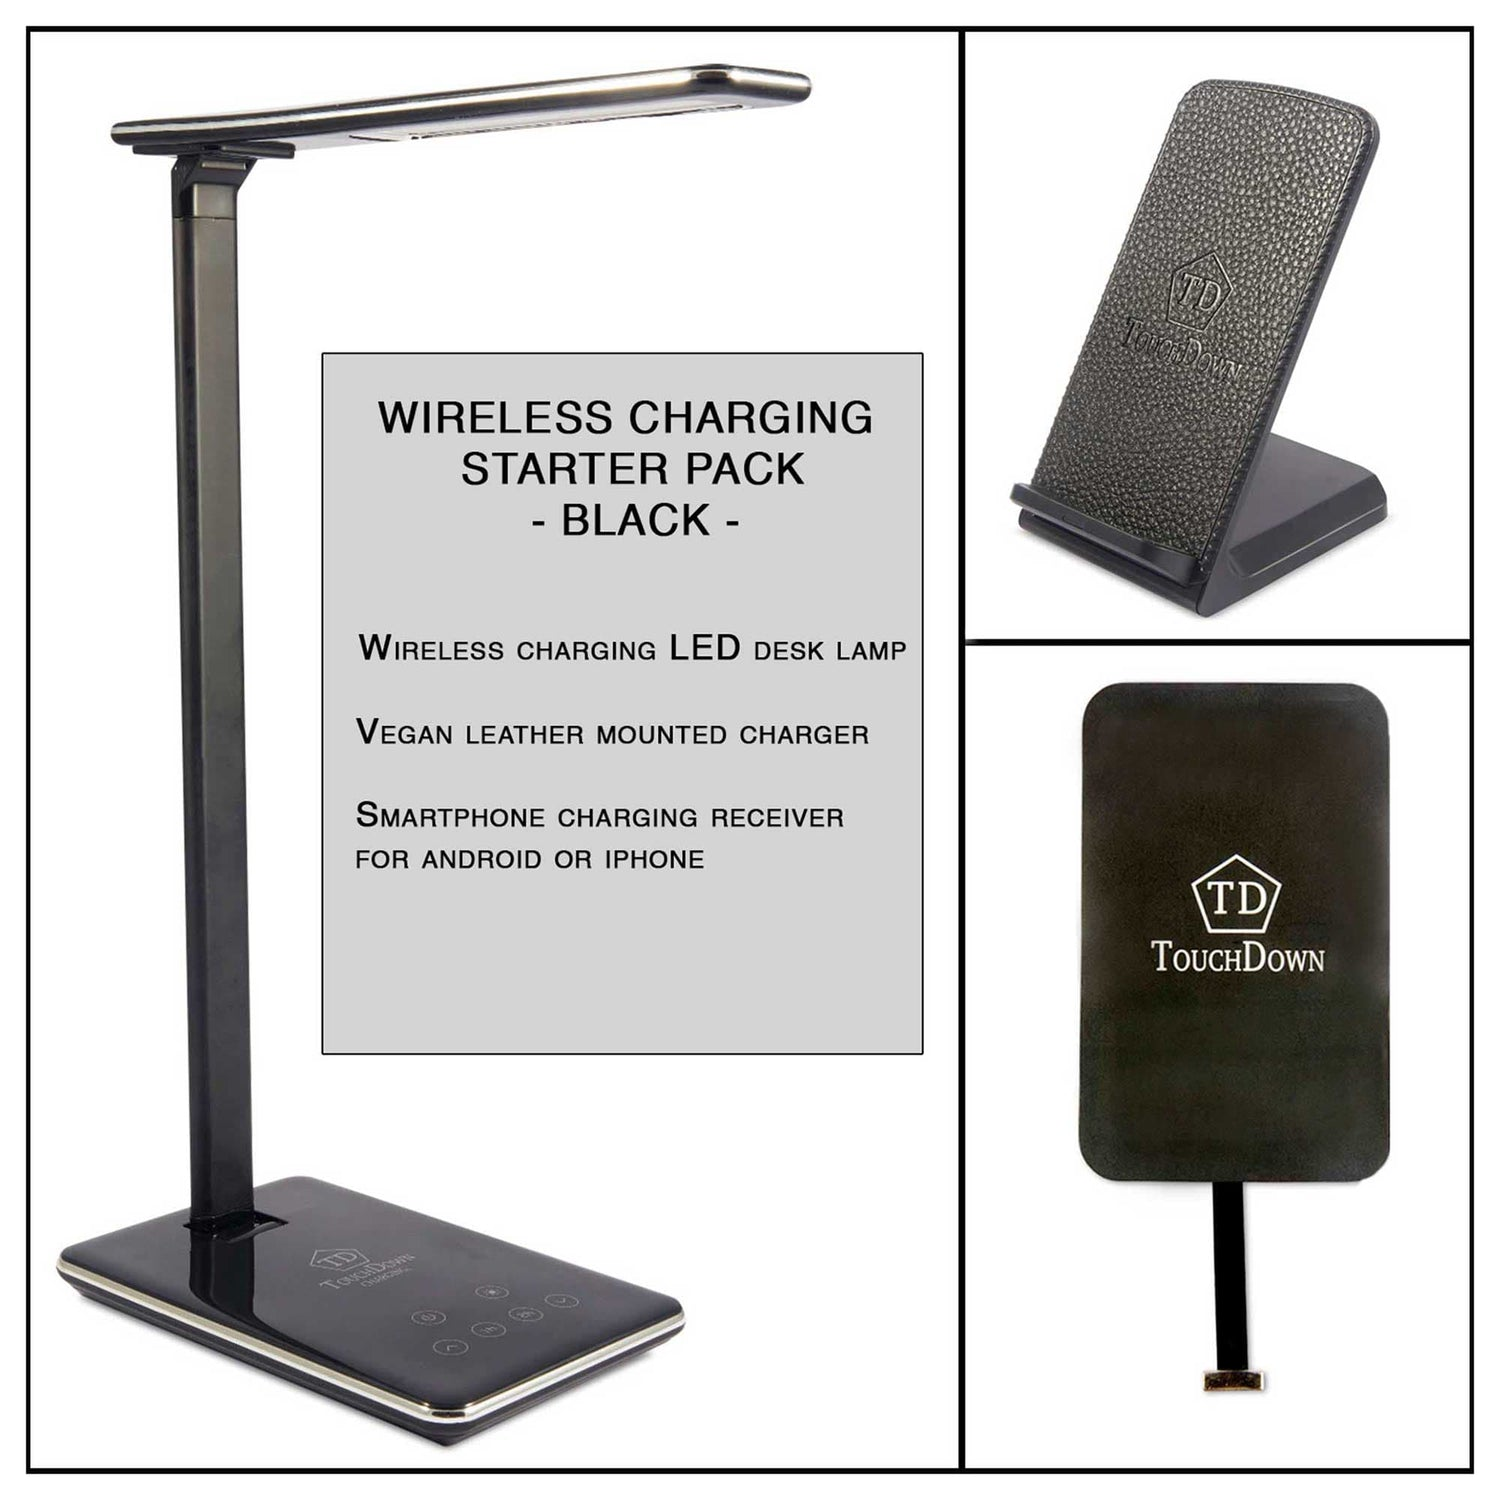 TOUCHDOWN Starter Pack Wireless Charging Bundle | Desk Lamp | Mounted Charger | iPhone Receiver - Black | White